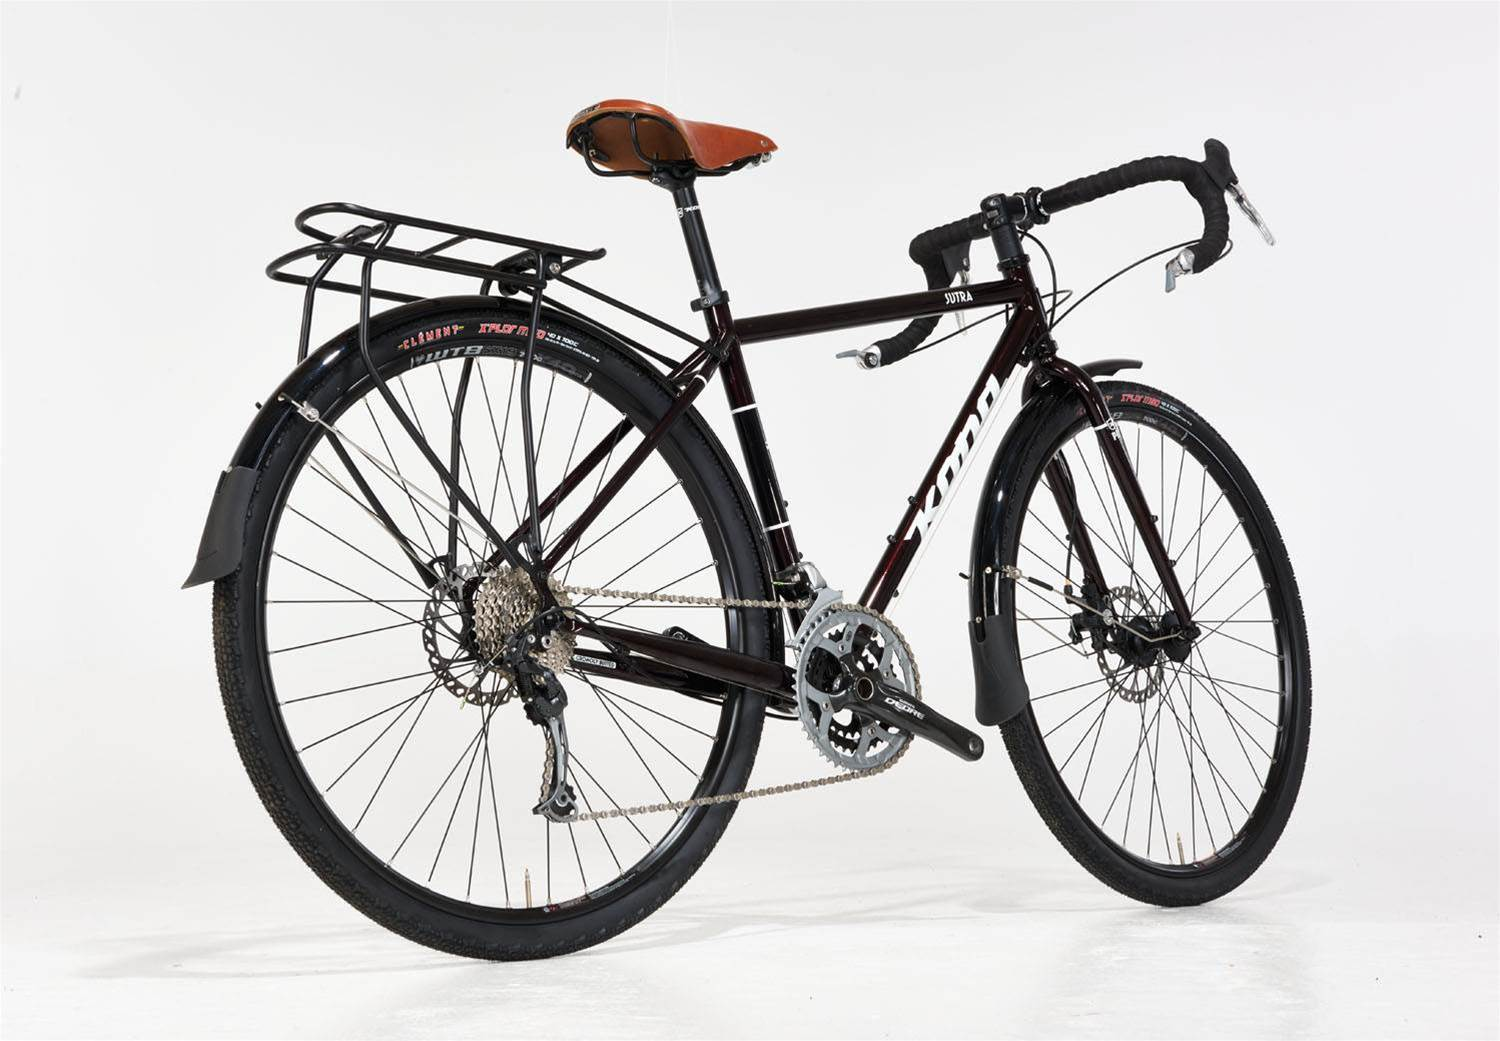 BUYER'S GUIDE: Touring bikes